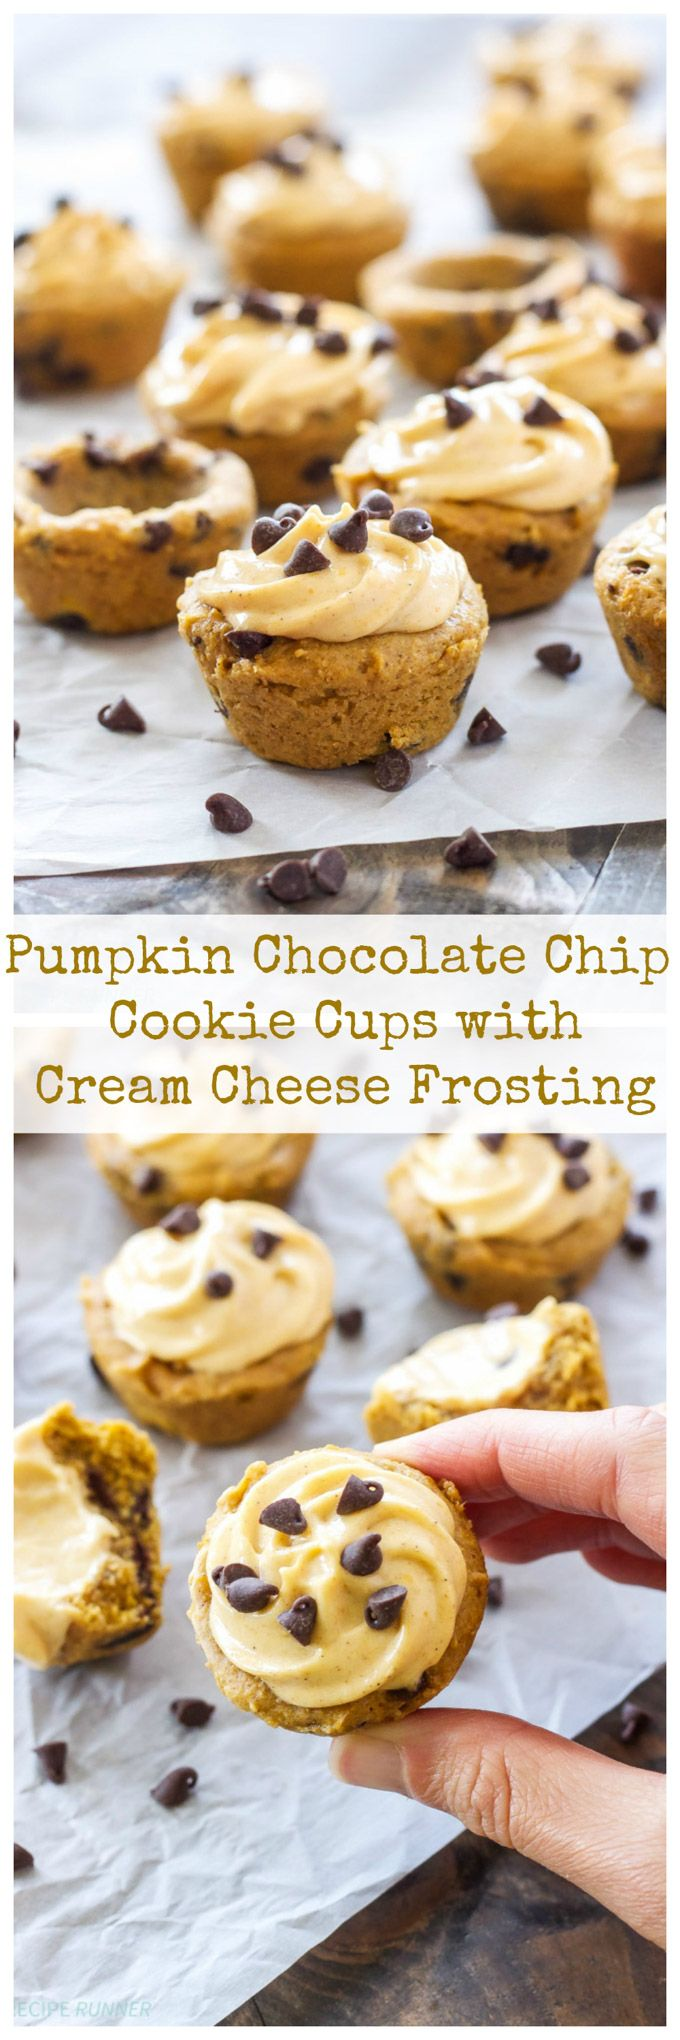 Mini pumpkin chocolate chip cookie cups are filled with a delicious pumpkin cream cheese frosting! They are the perfect little treat to make this fall!